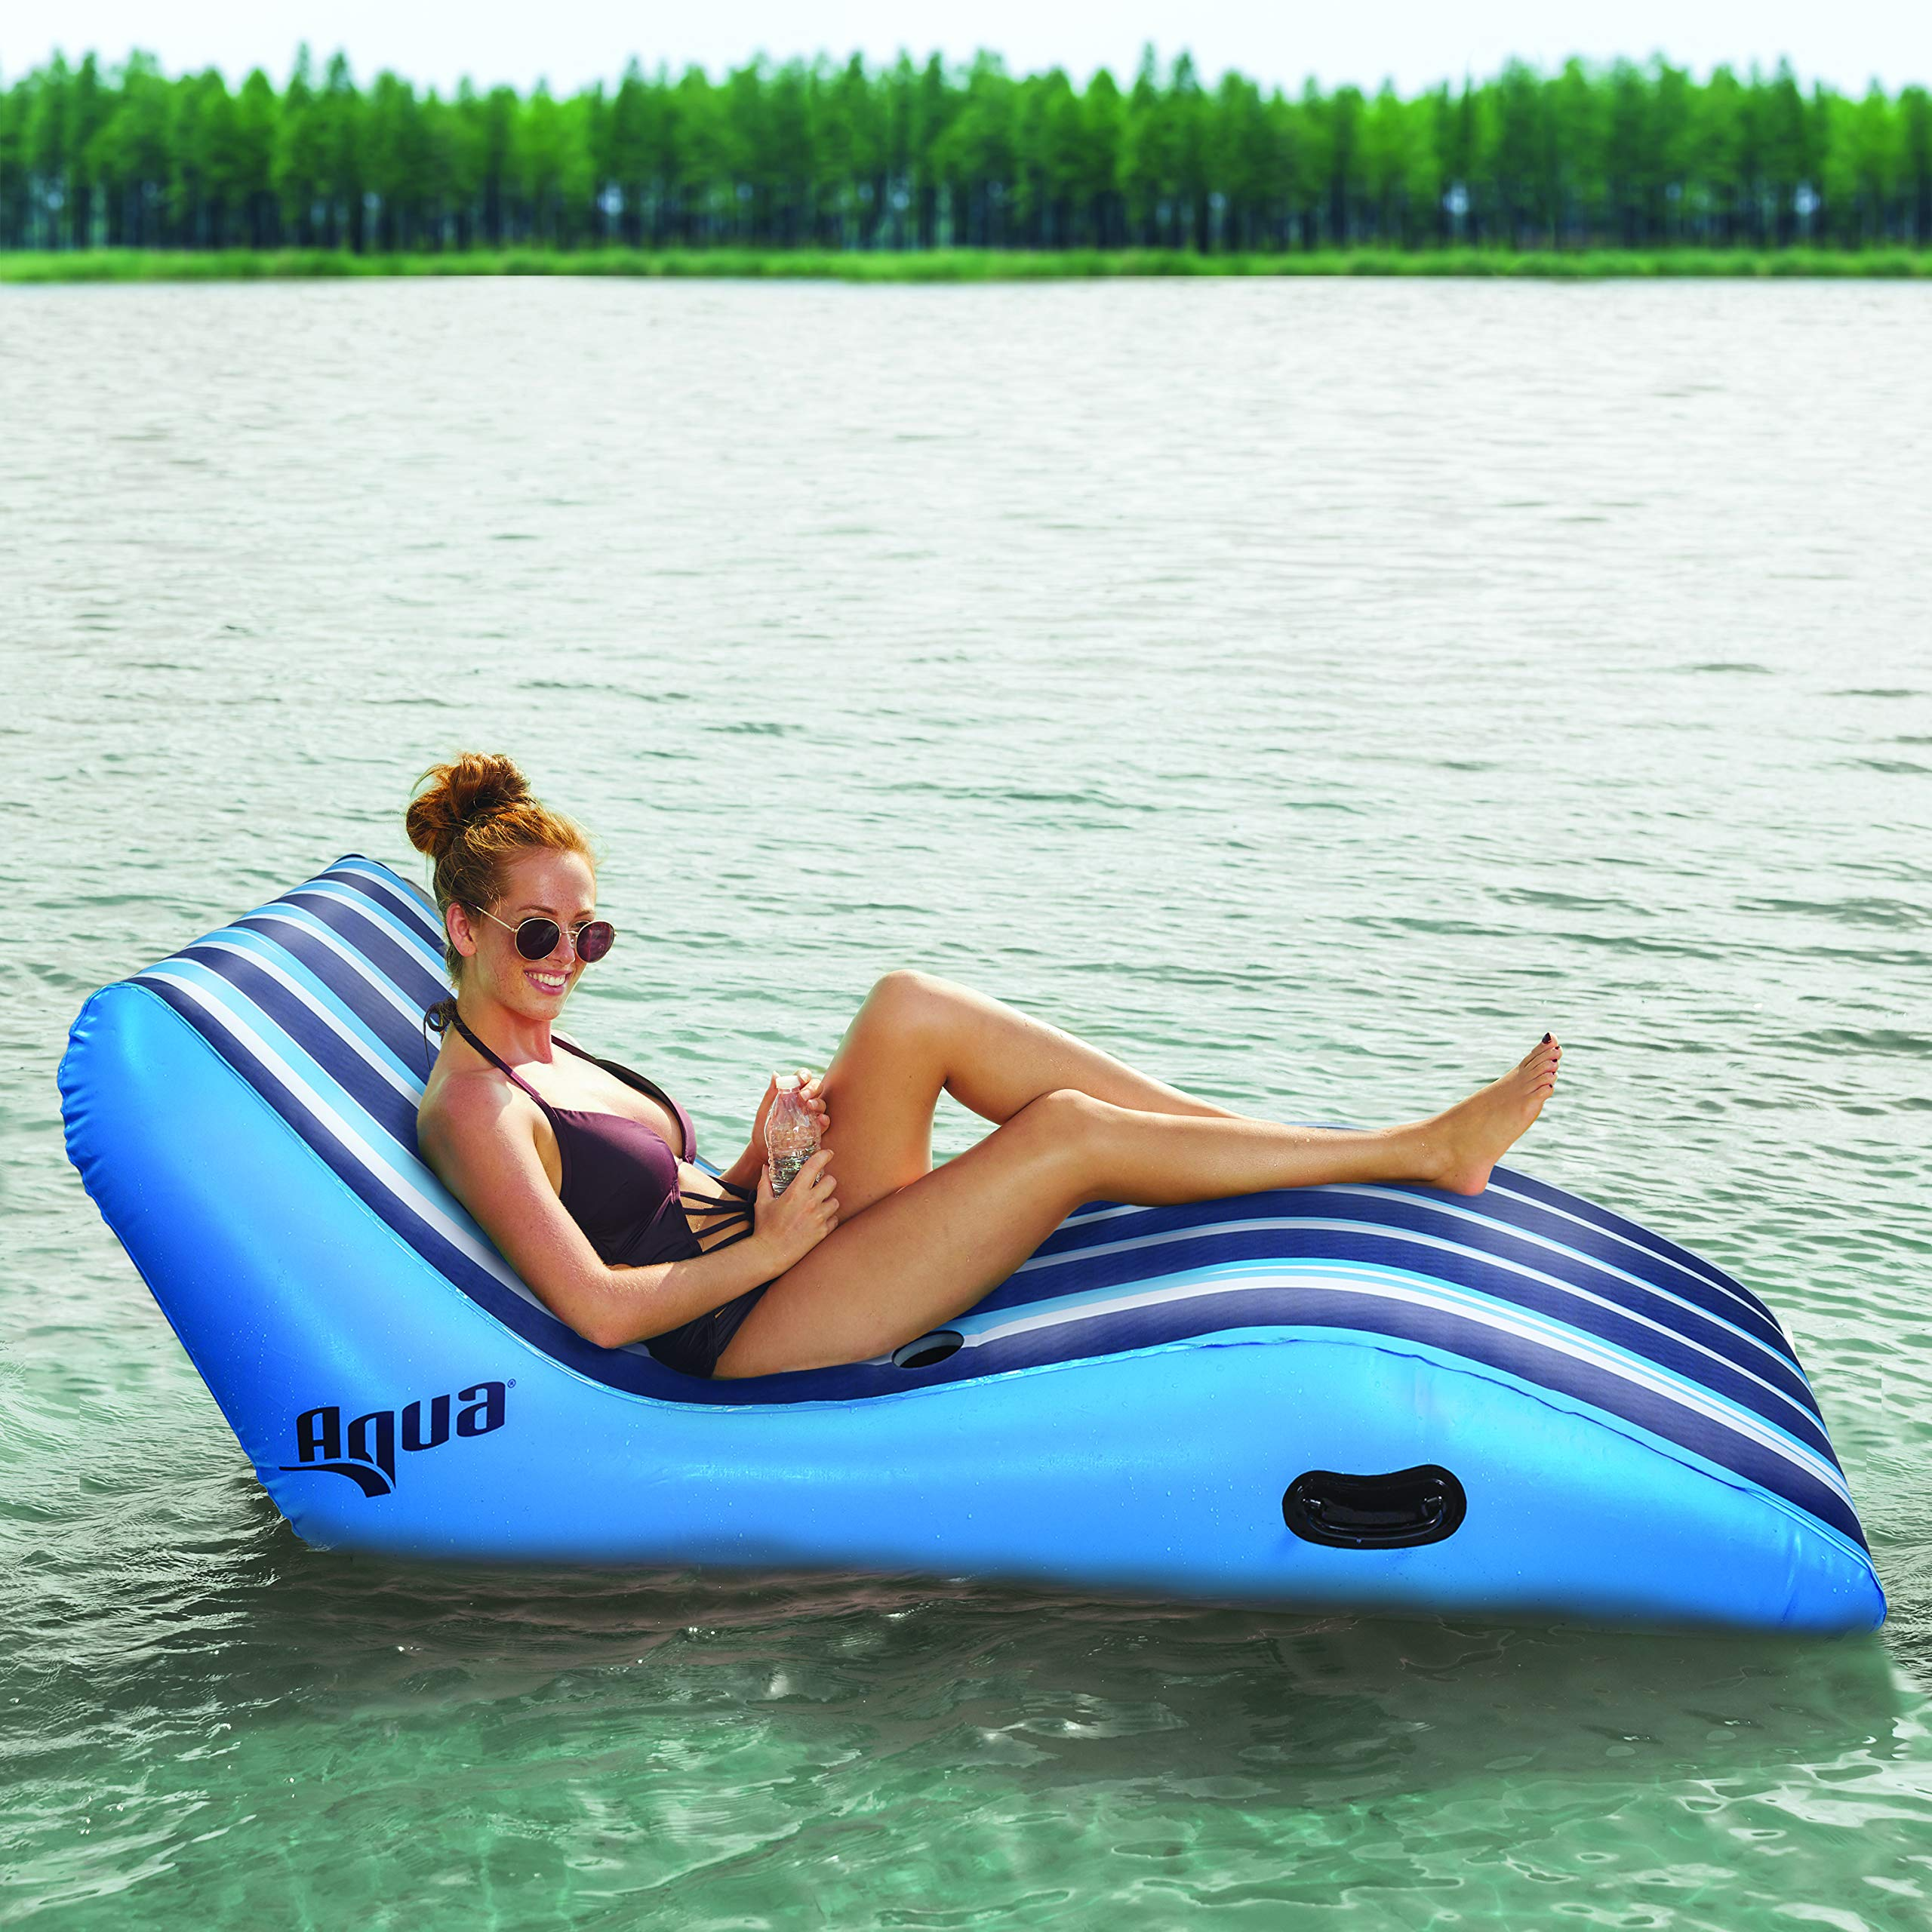 Aqua Ultra Comfort Recliner Lounge, One 1-Person, Heavy Duty, X-Large, Lounge Pool Float, Navy/White Stripe by Aqua (Image #5)